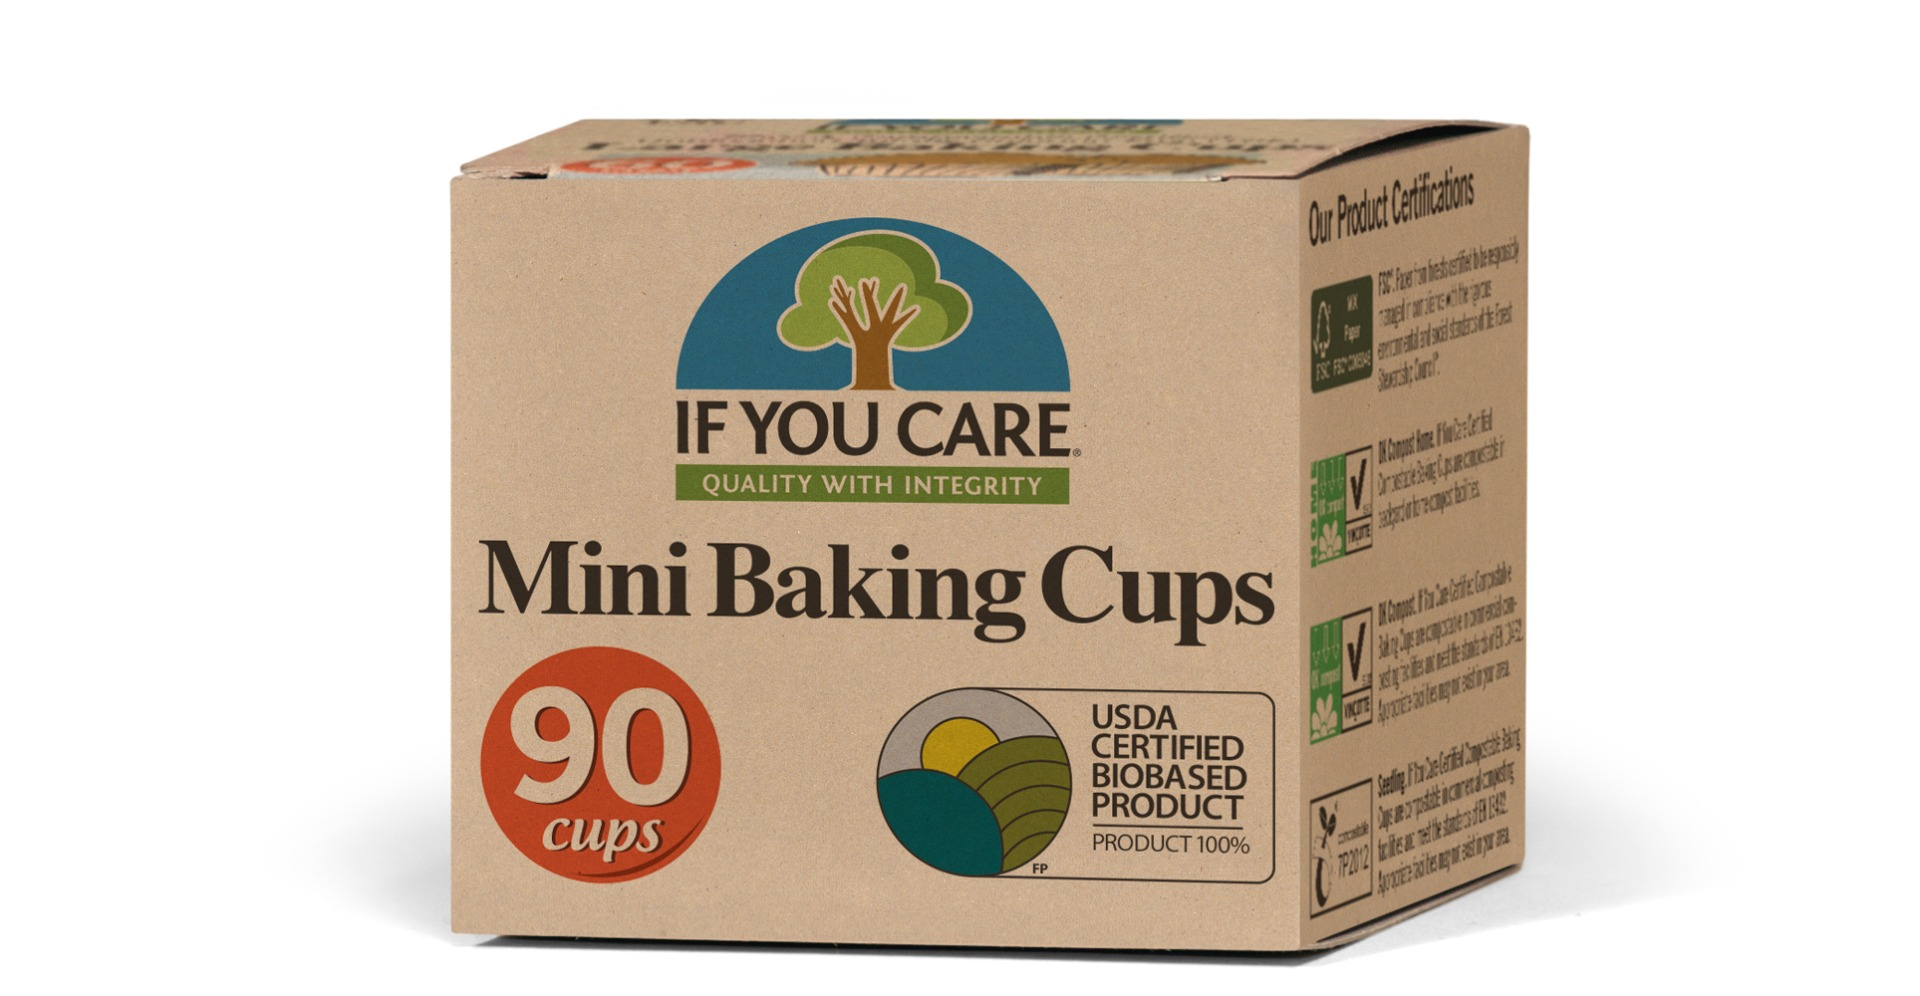 IF YOU CARE: Mini Baking Cups, 90 pc